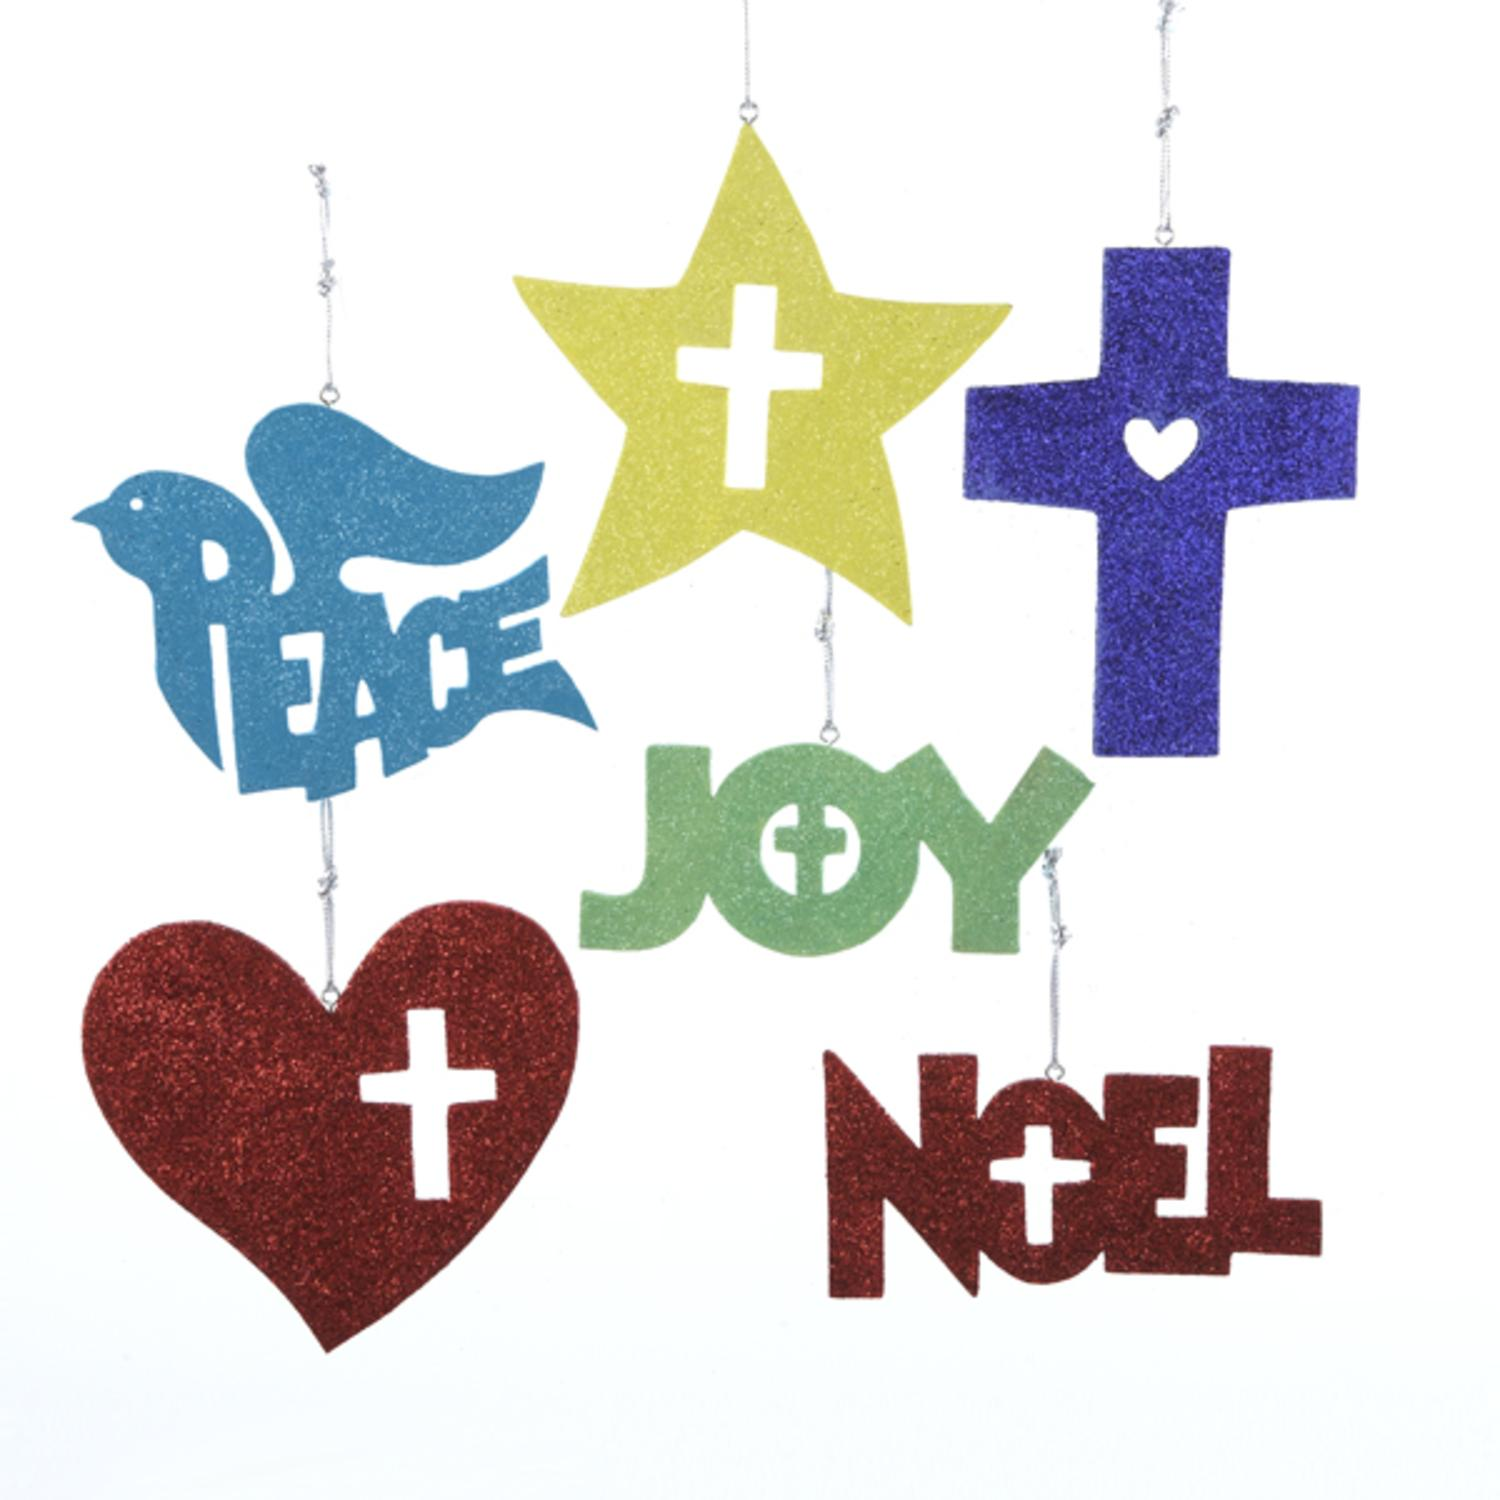 24 Christmas Traditions Peace, Joy, Noel, Star & Cross Glitter Ornaments 5""